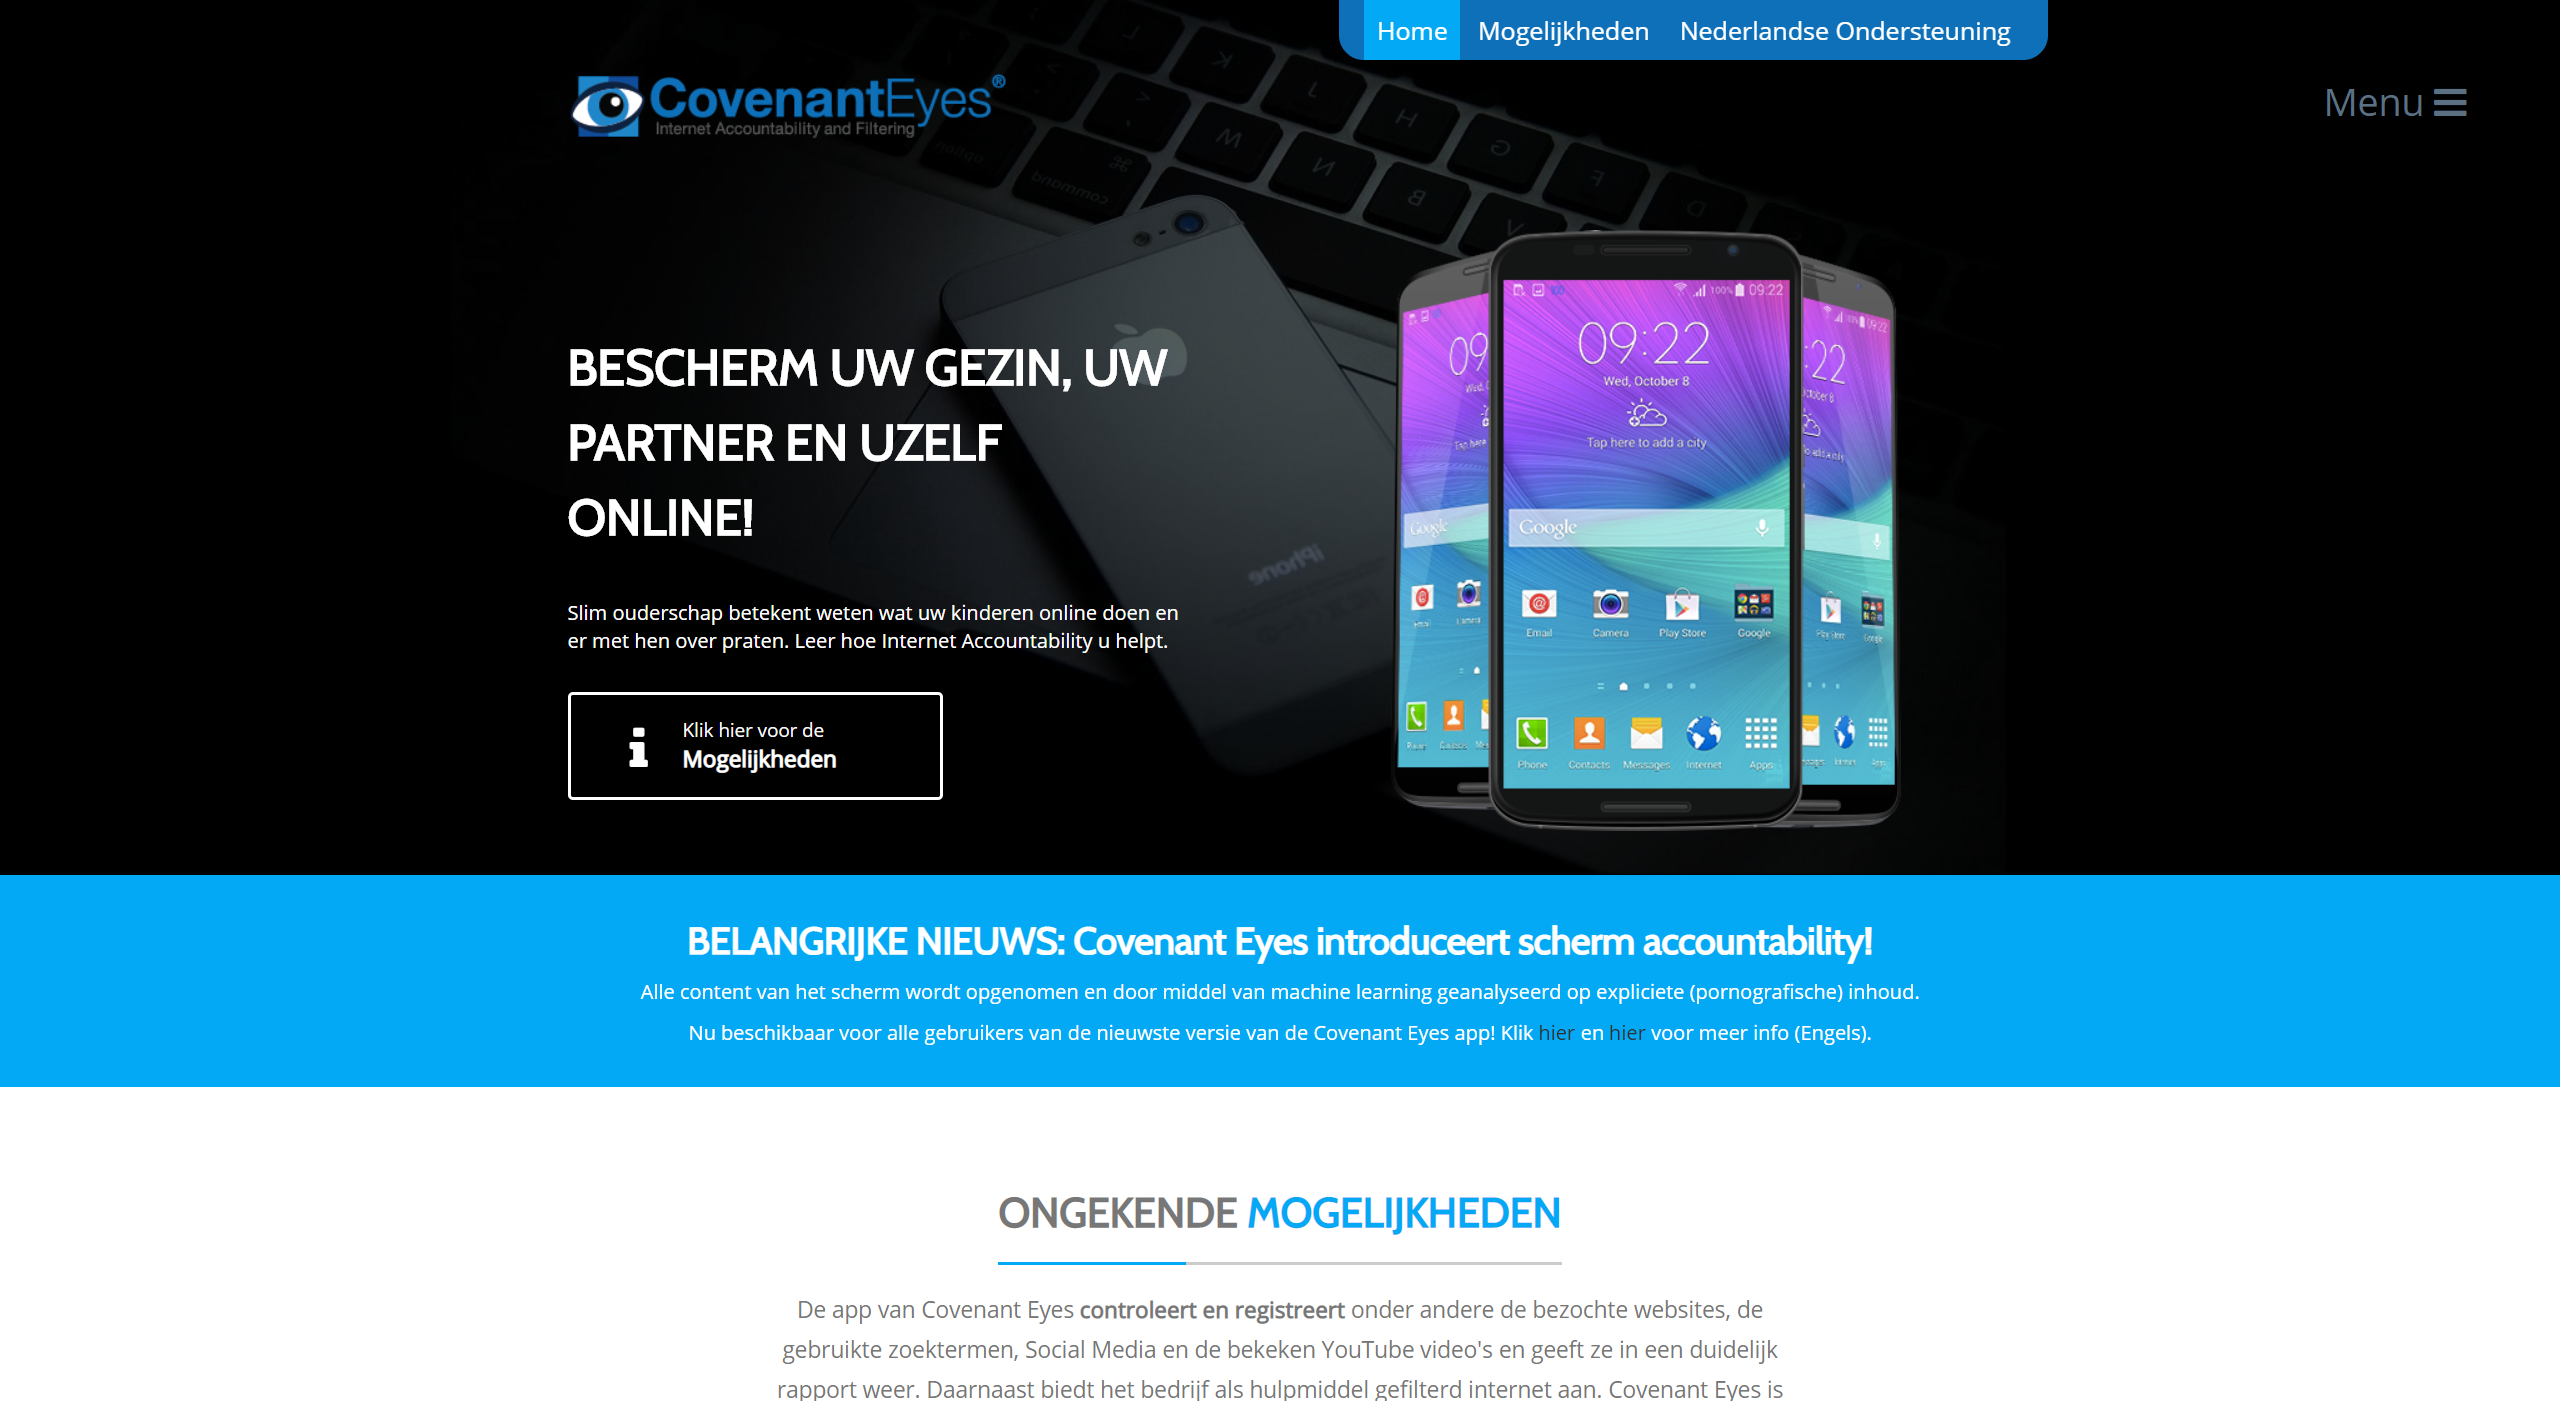 Covenant Eyes Nederland